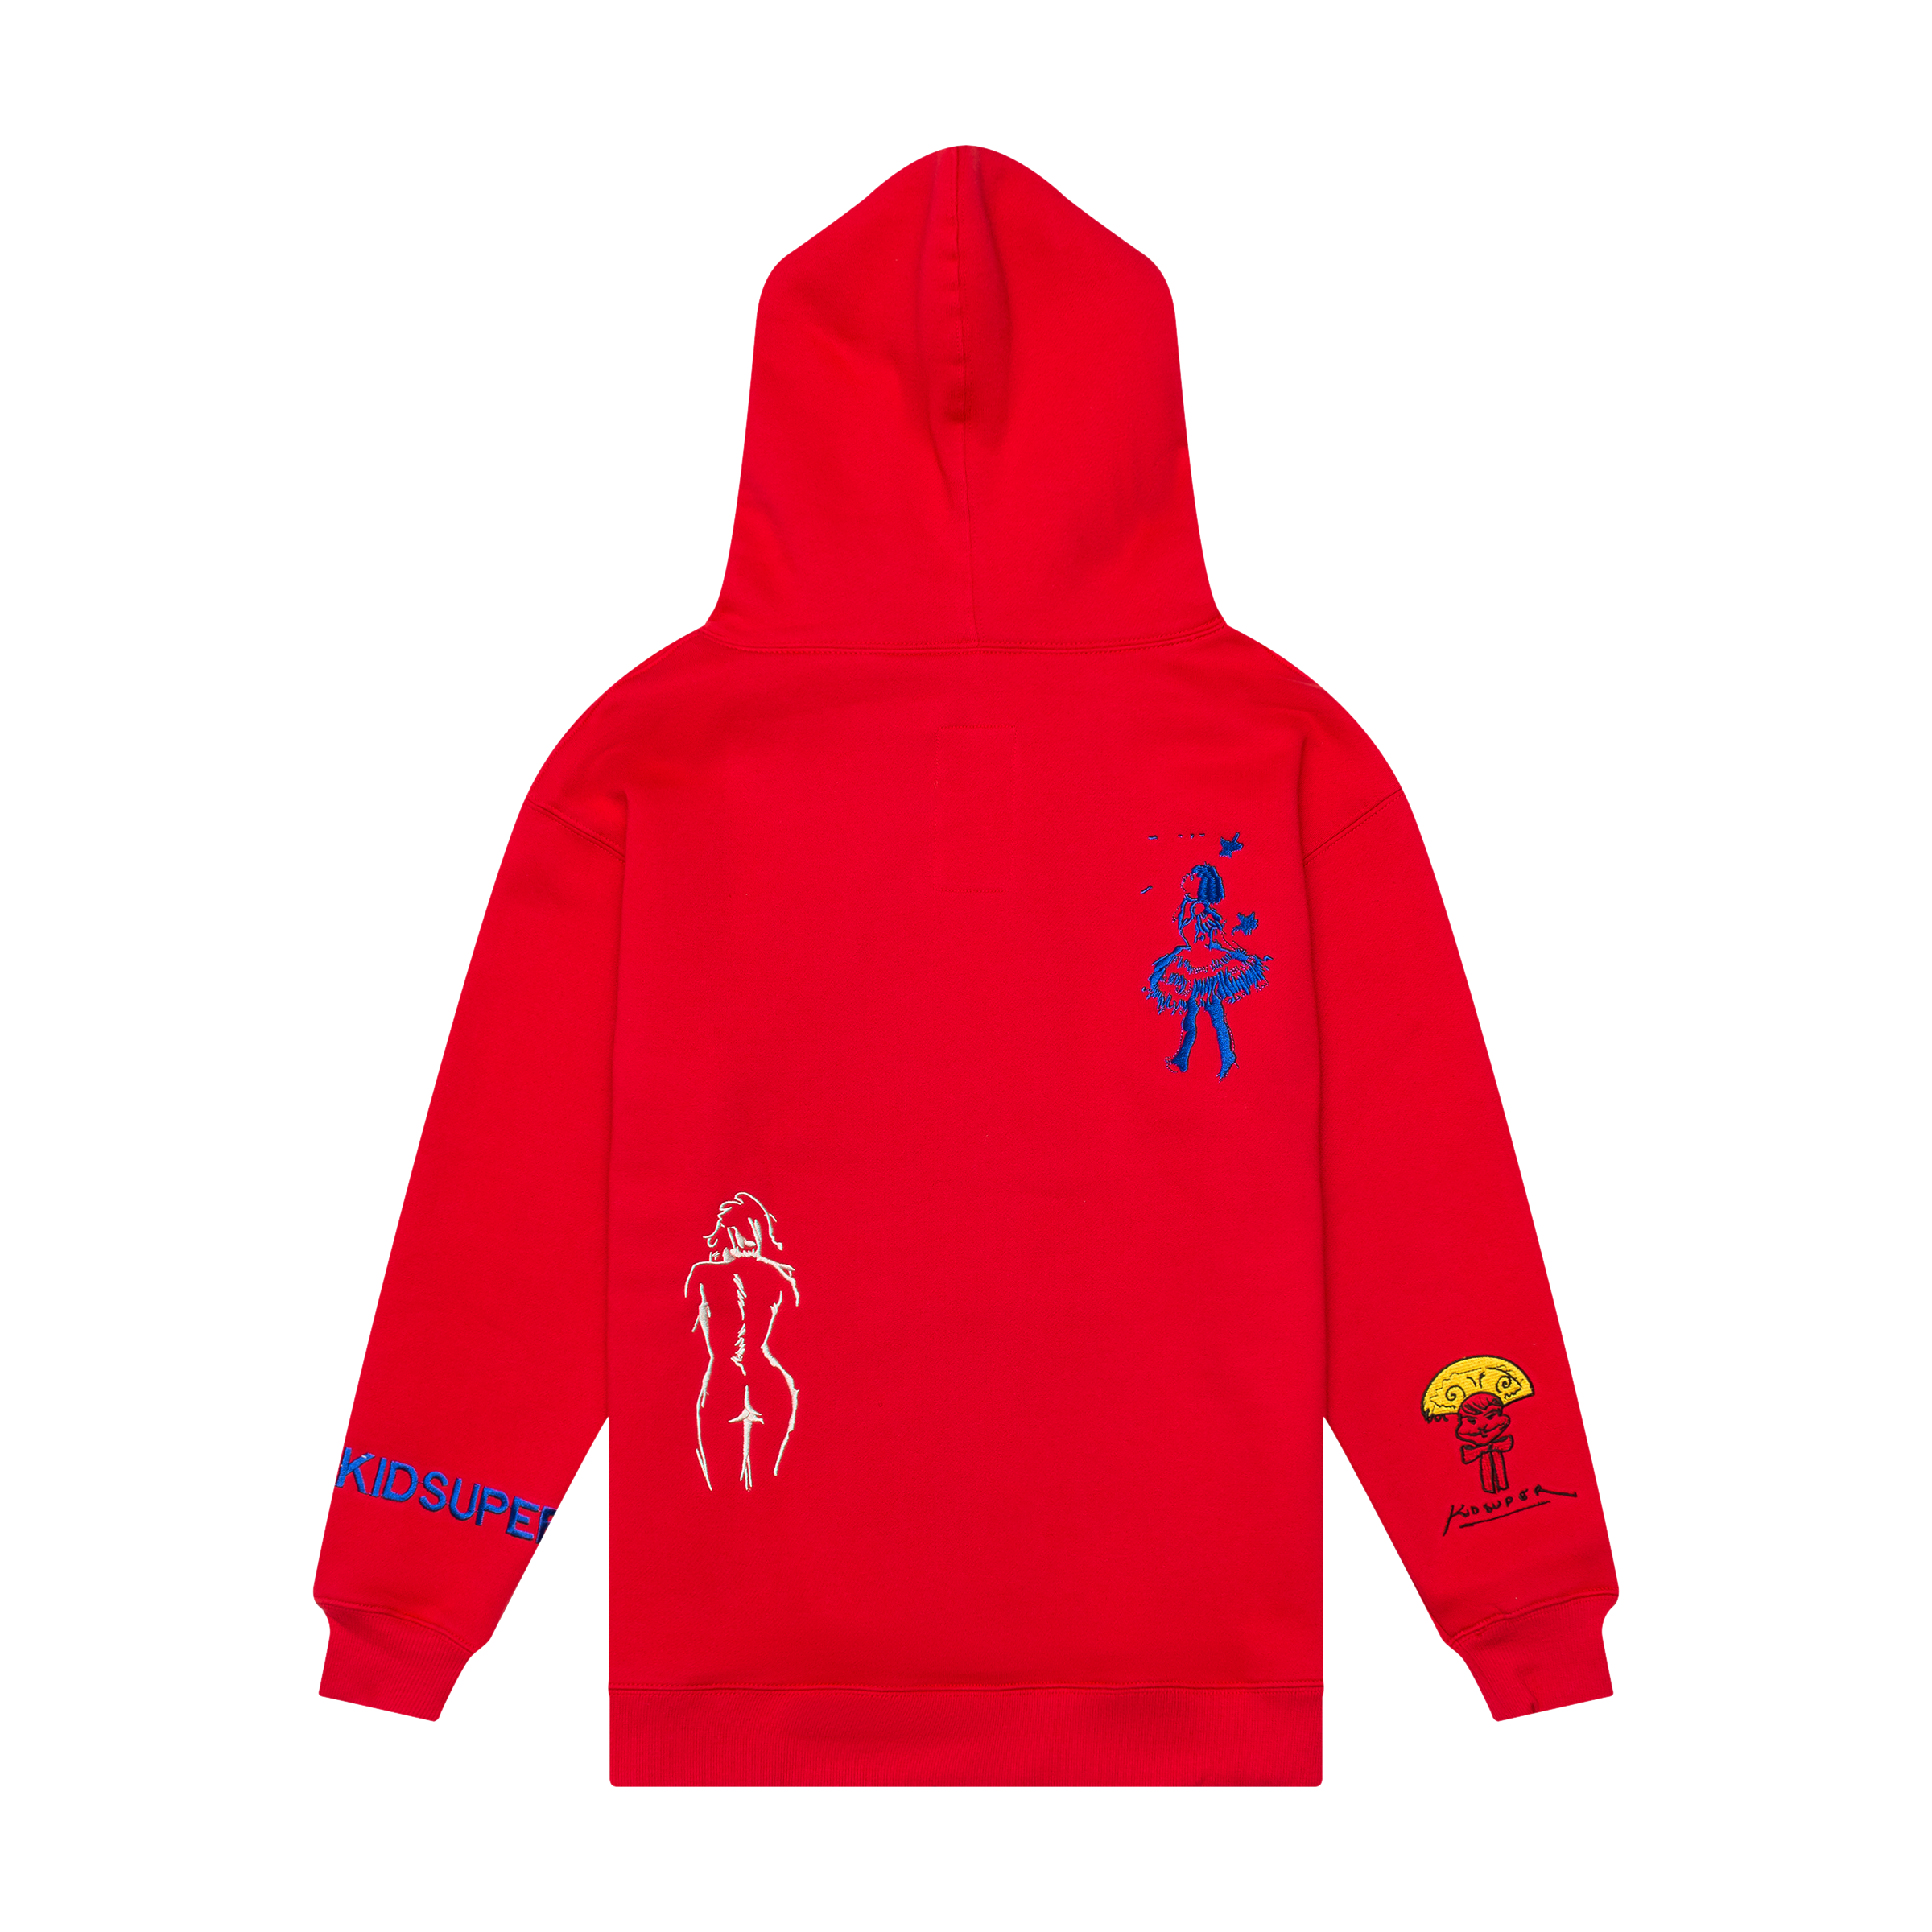 hoodie product photography